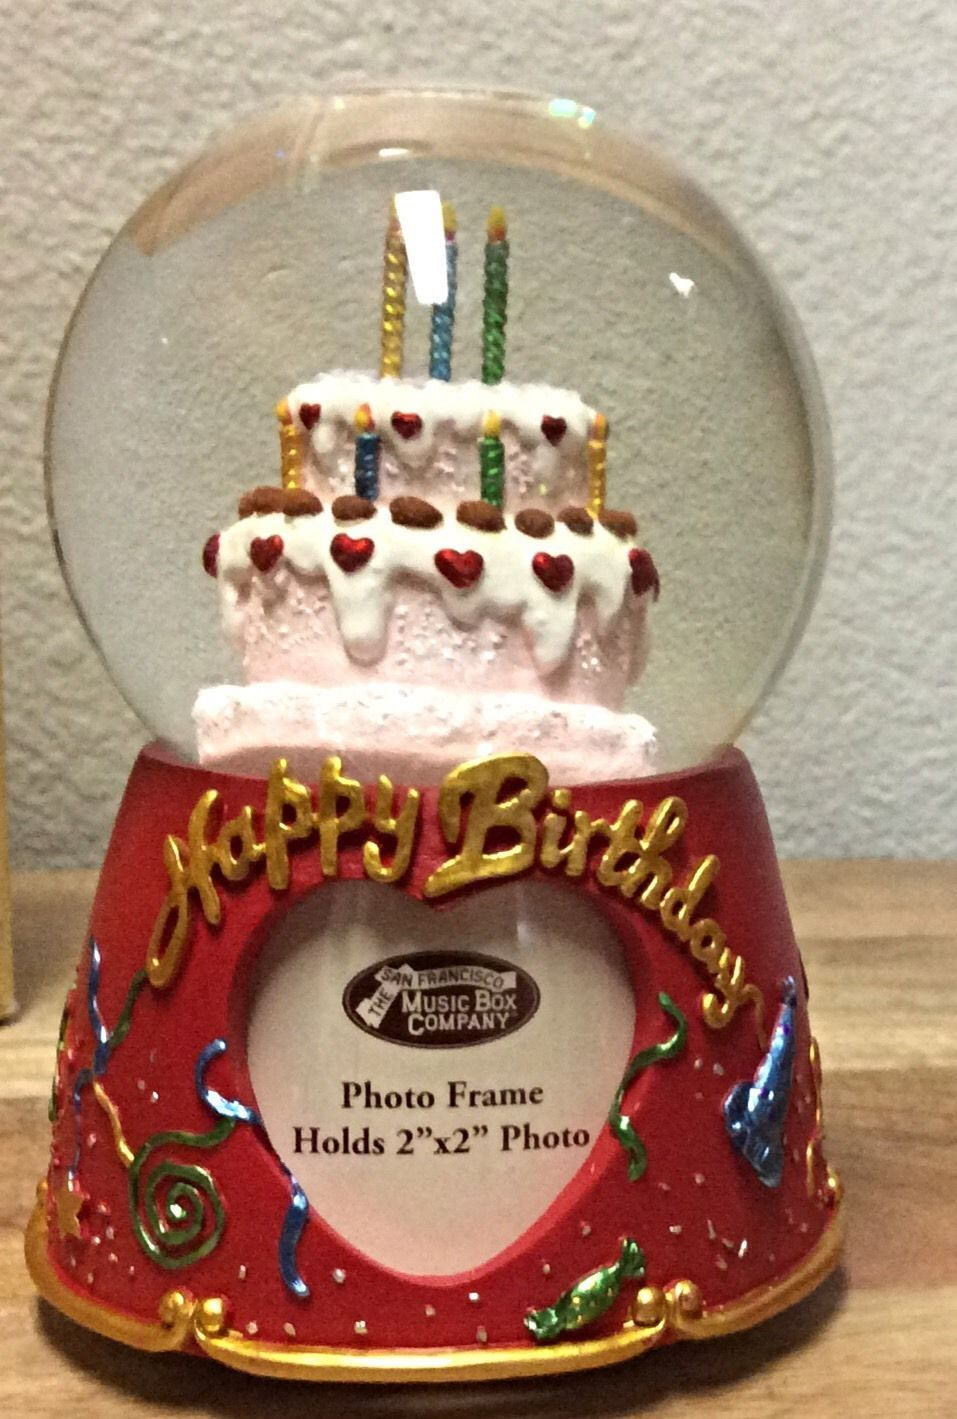 The San Francisco Music Box Co. Happy Birthday Personalized Water Globe~New